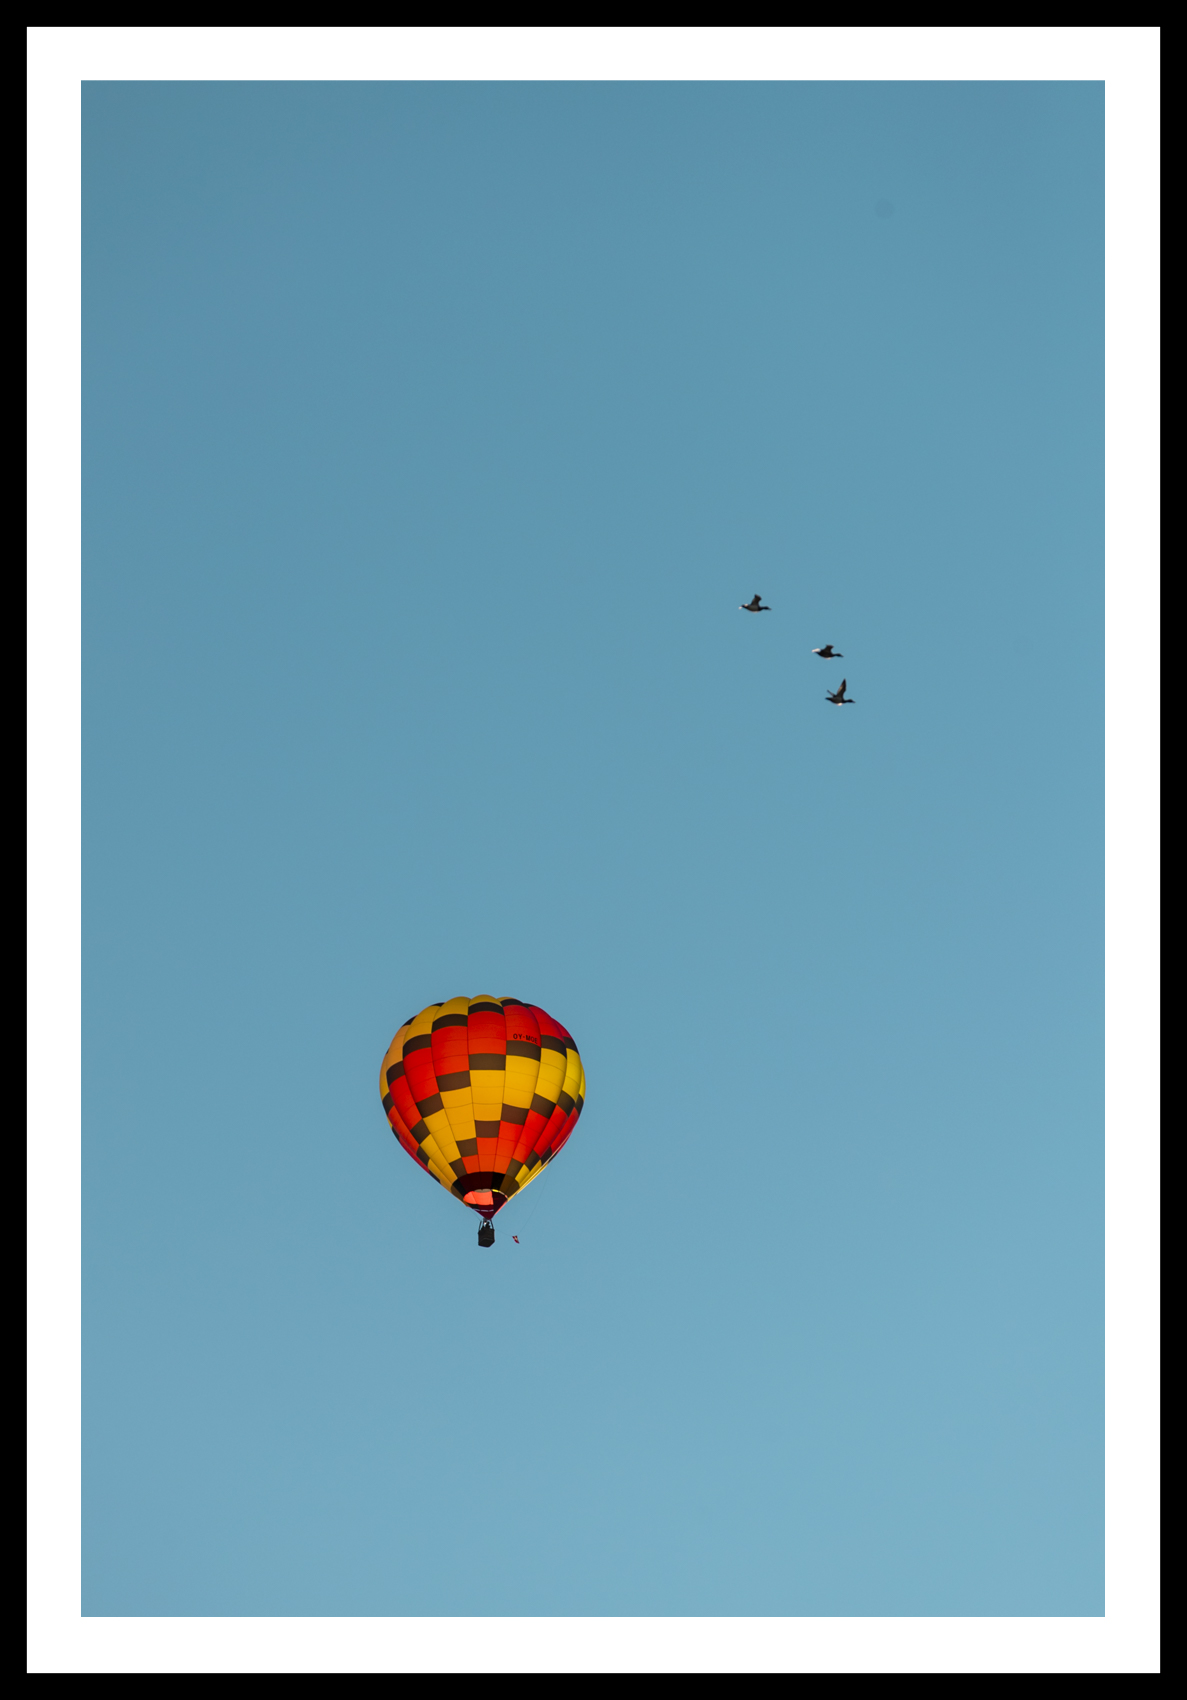 Birds__Hot_Air_Balloon_F3I0562_FRAME